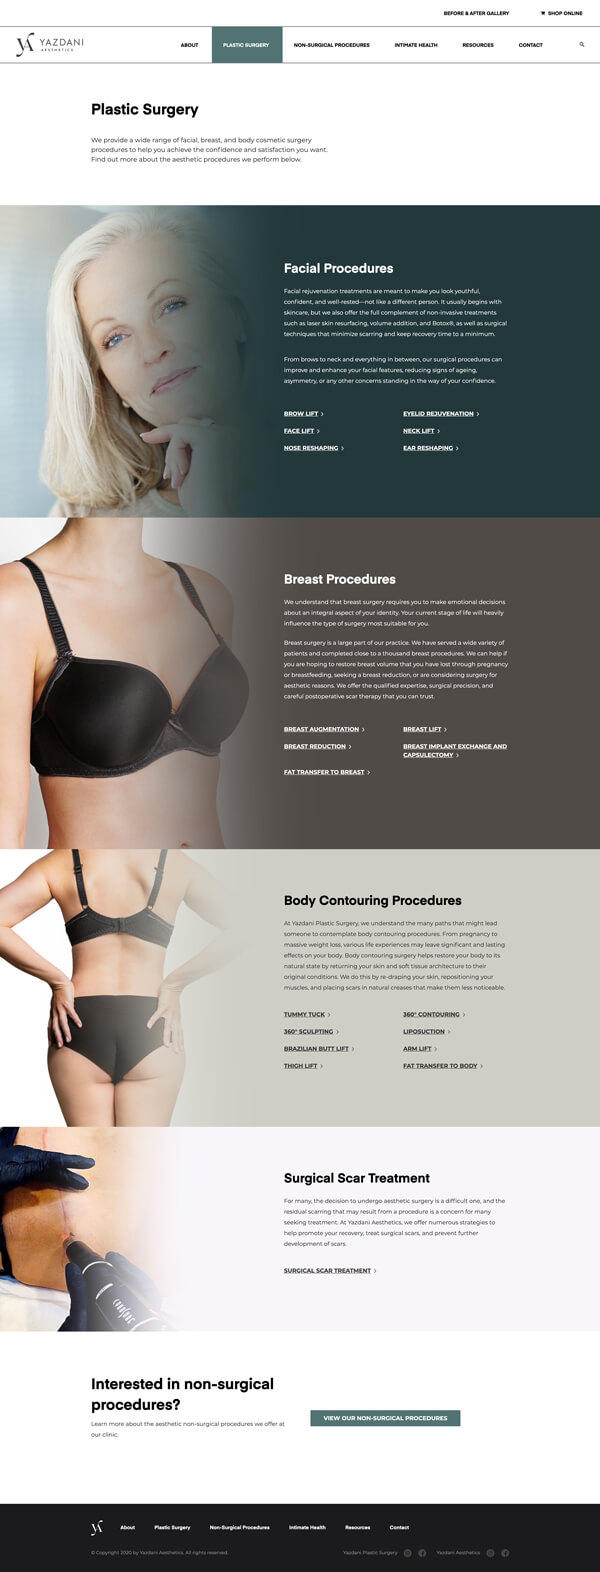 Website plastic surgery listing page